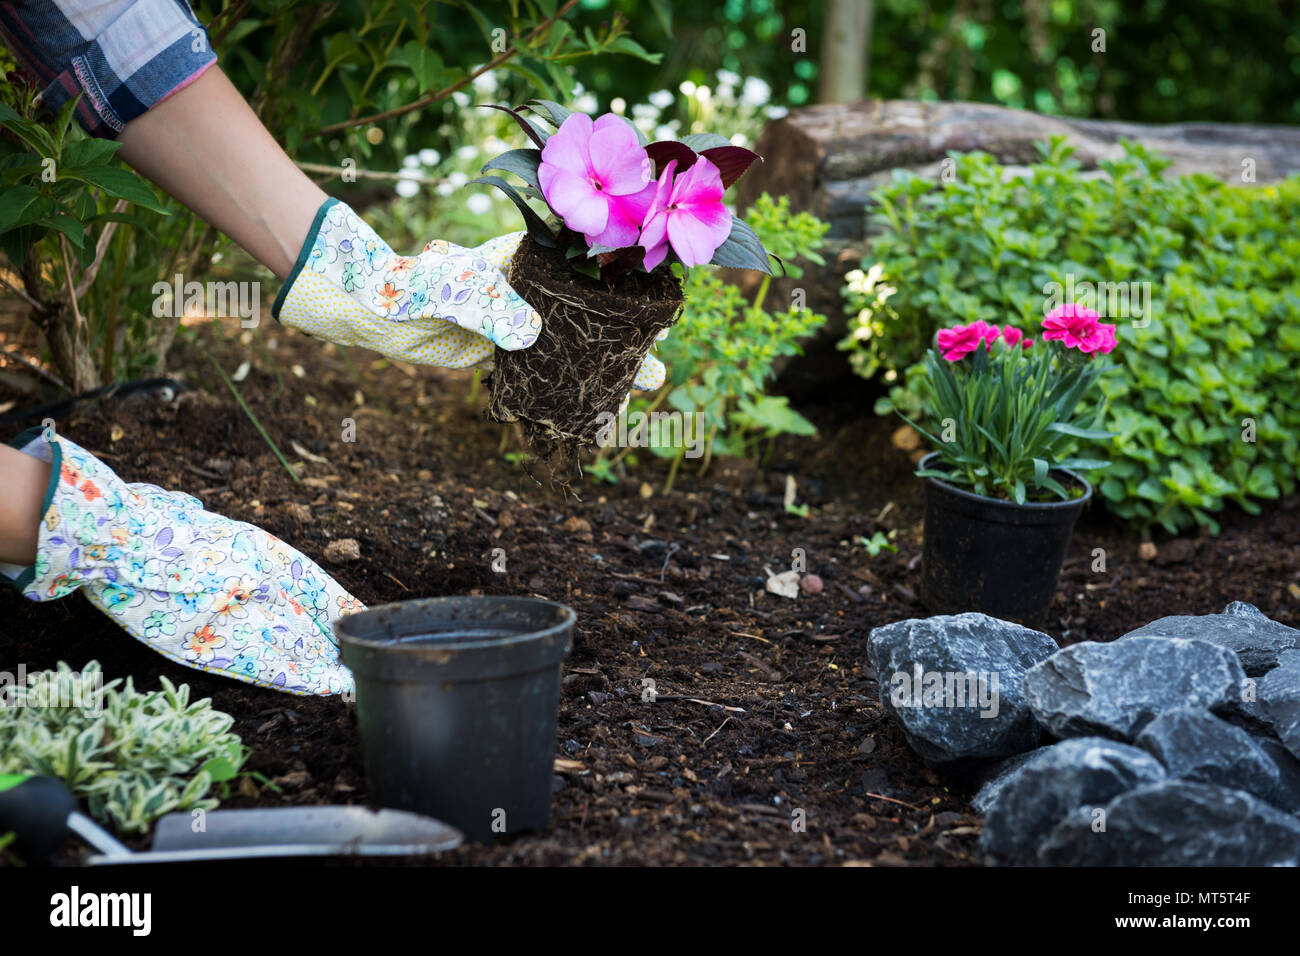 Unrecognizable female gardener holding beautiful flower ready to be planted in a garden. Gardening concept. Garden Landscaping small business start up. - Stock Image